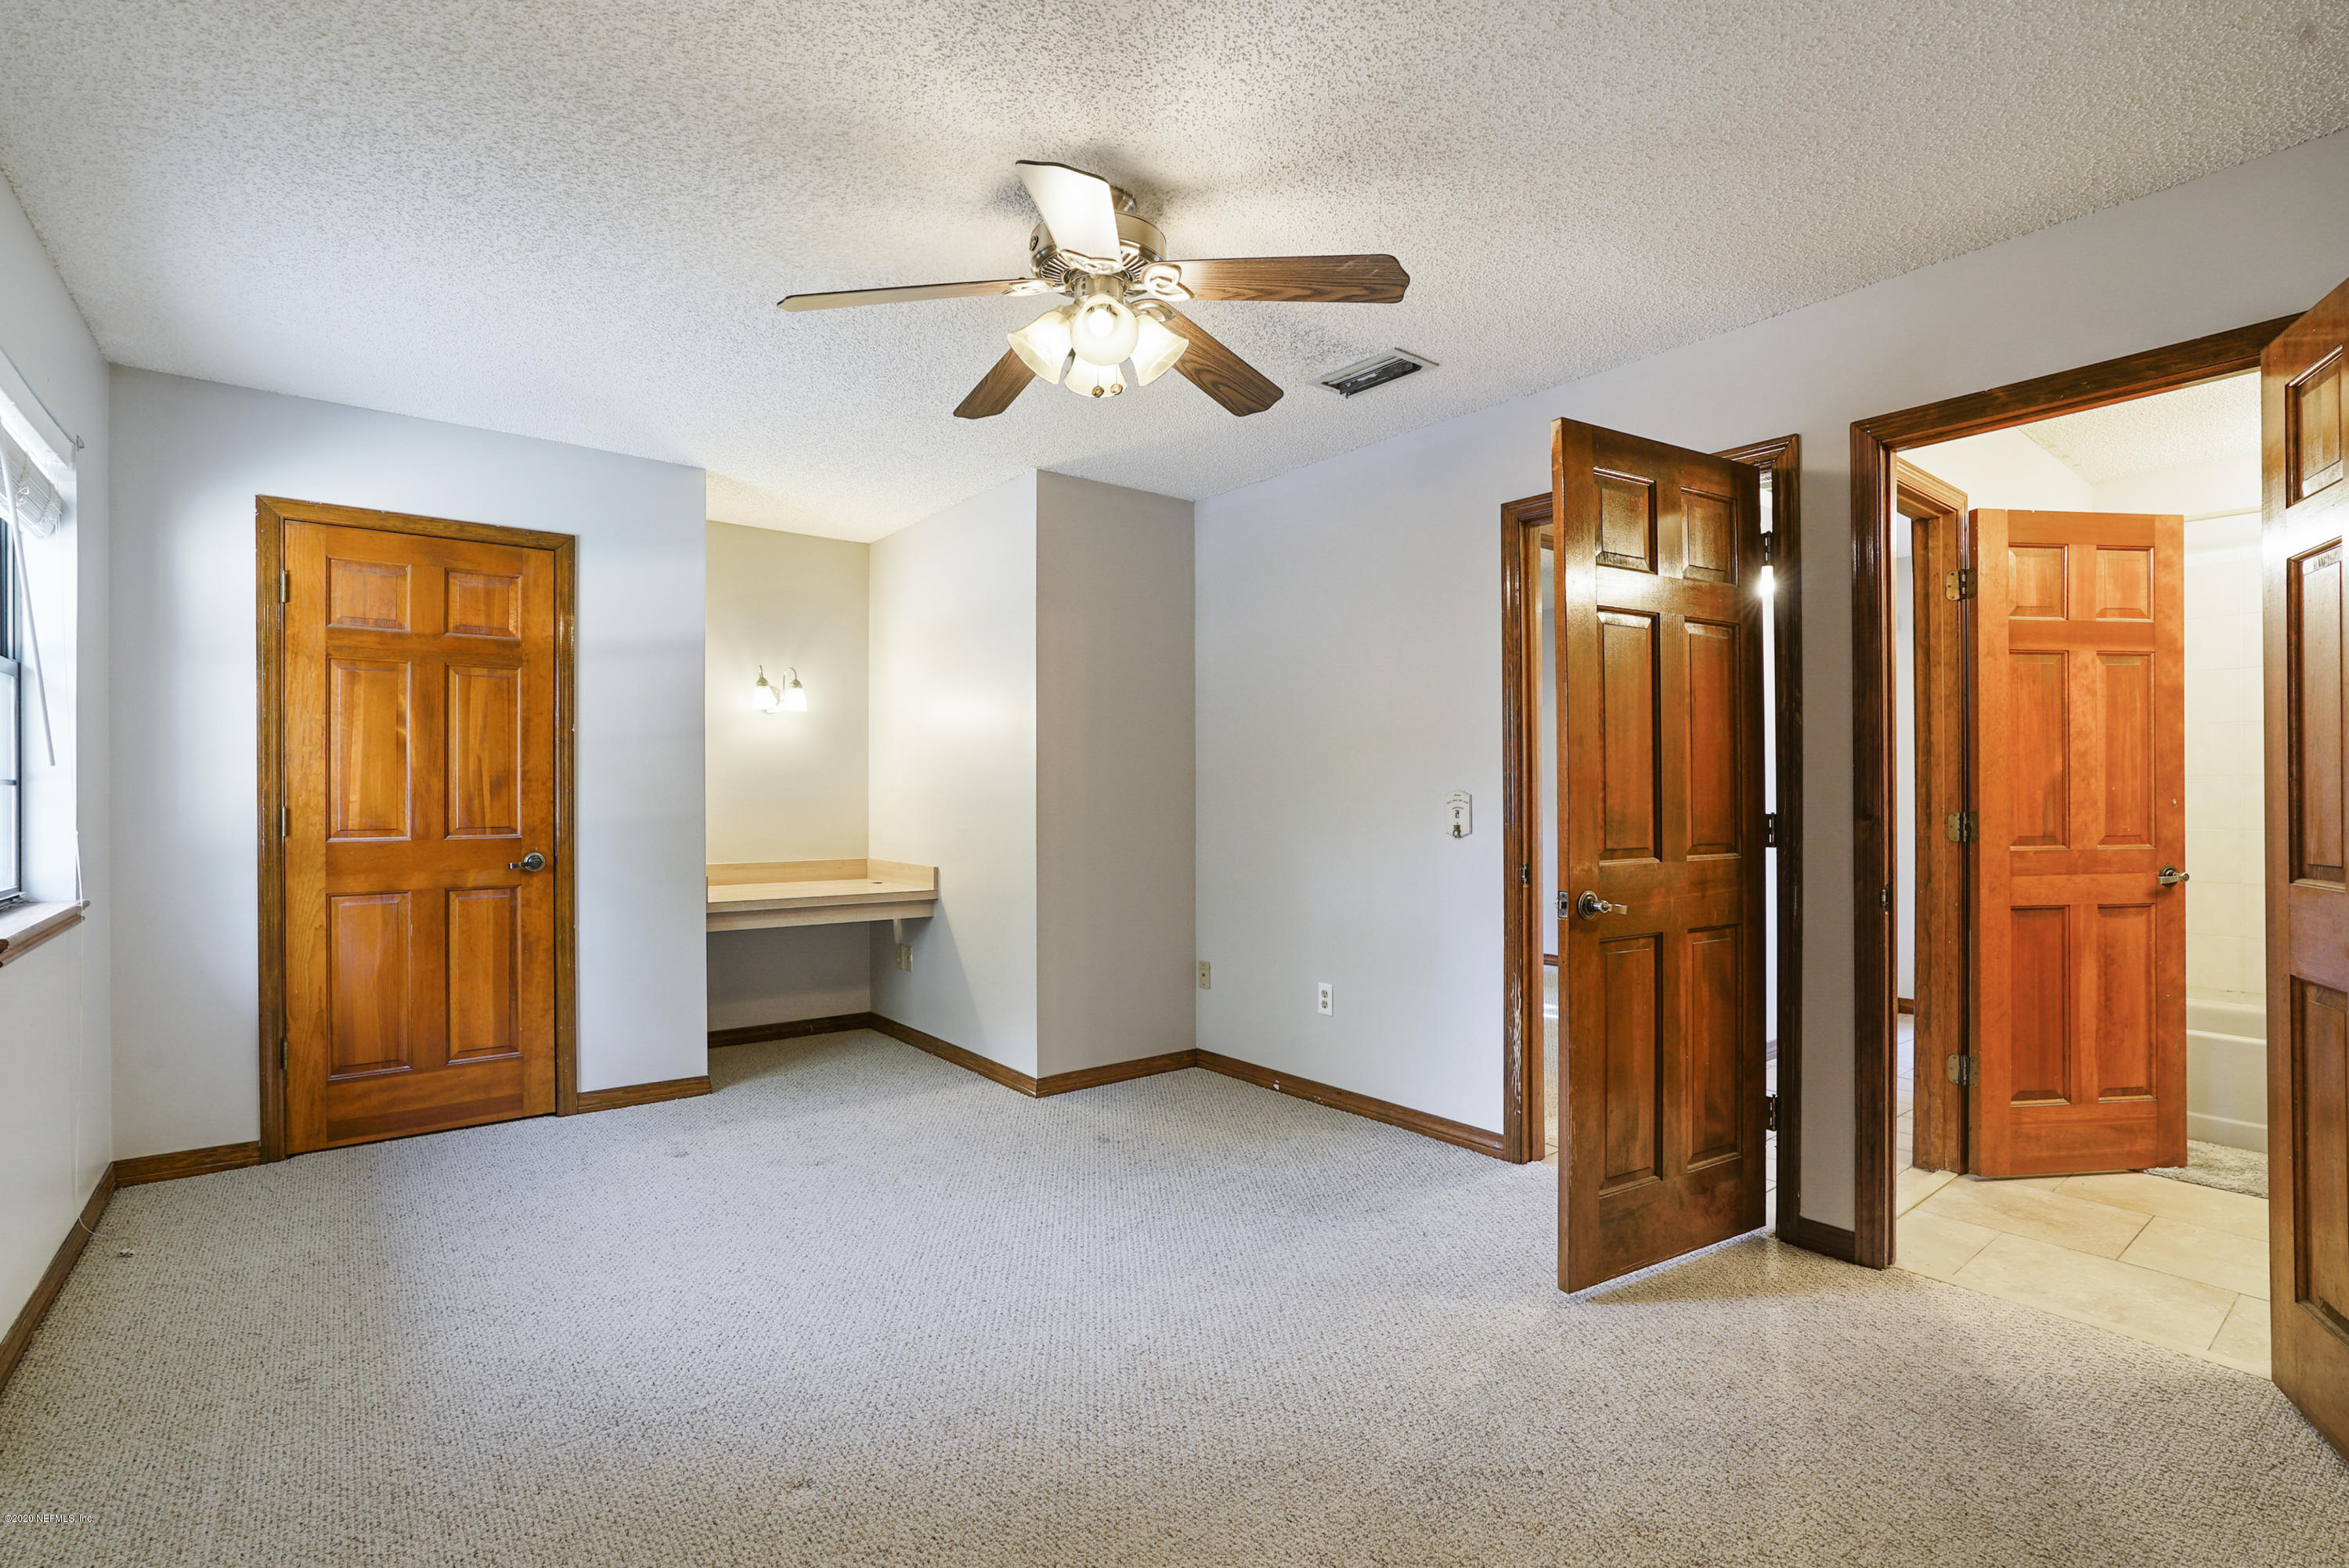 2390 PINE HOLLOW, GREEN COVE SPRINGS, FLORIDA 32043, 5 Bedrooms Bedrooms, ,2 BathroomsBathrooms,Residential,For sale,PINE HOLLOW,1057213